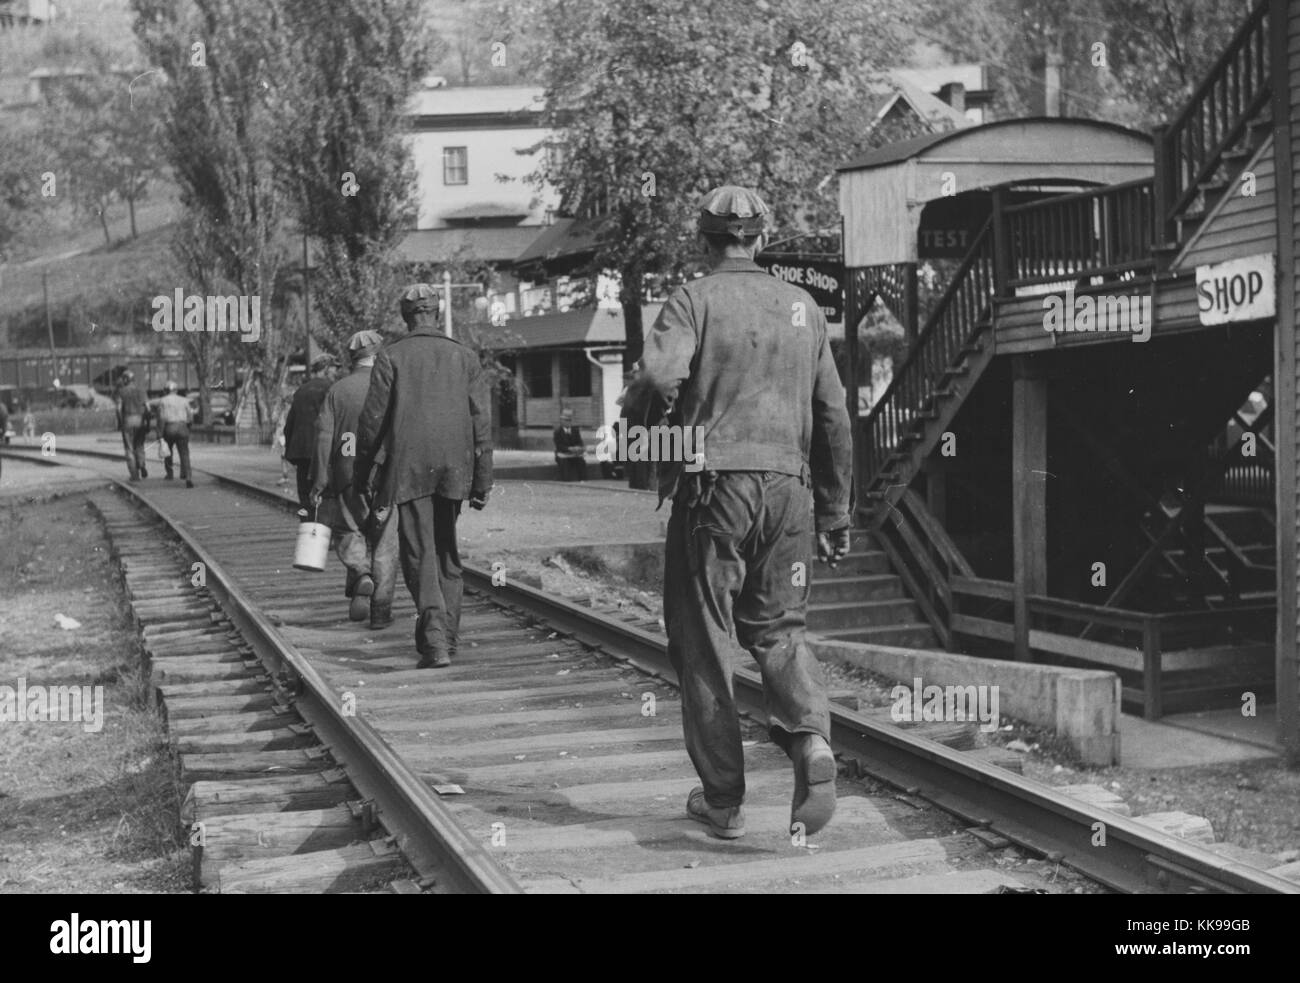 Black and white photograph of a group of coal miners walking on train tracks after work omar west virginia september 1938